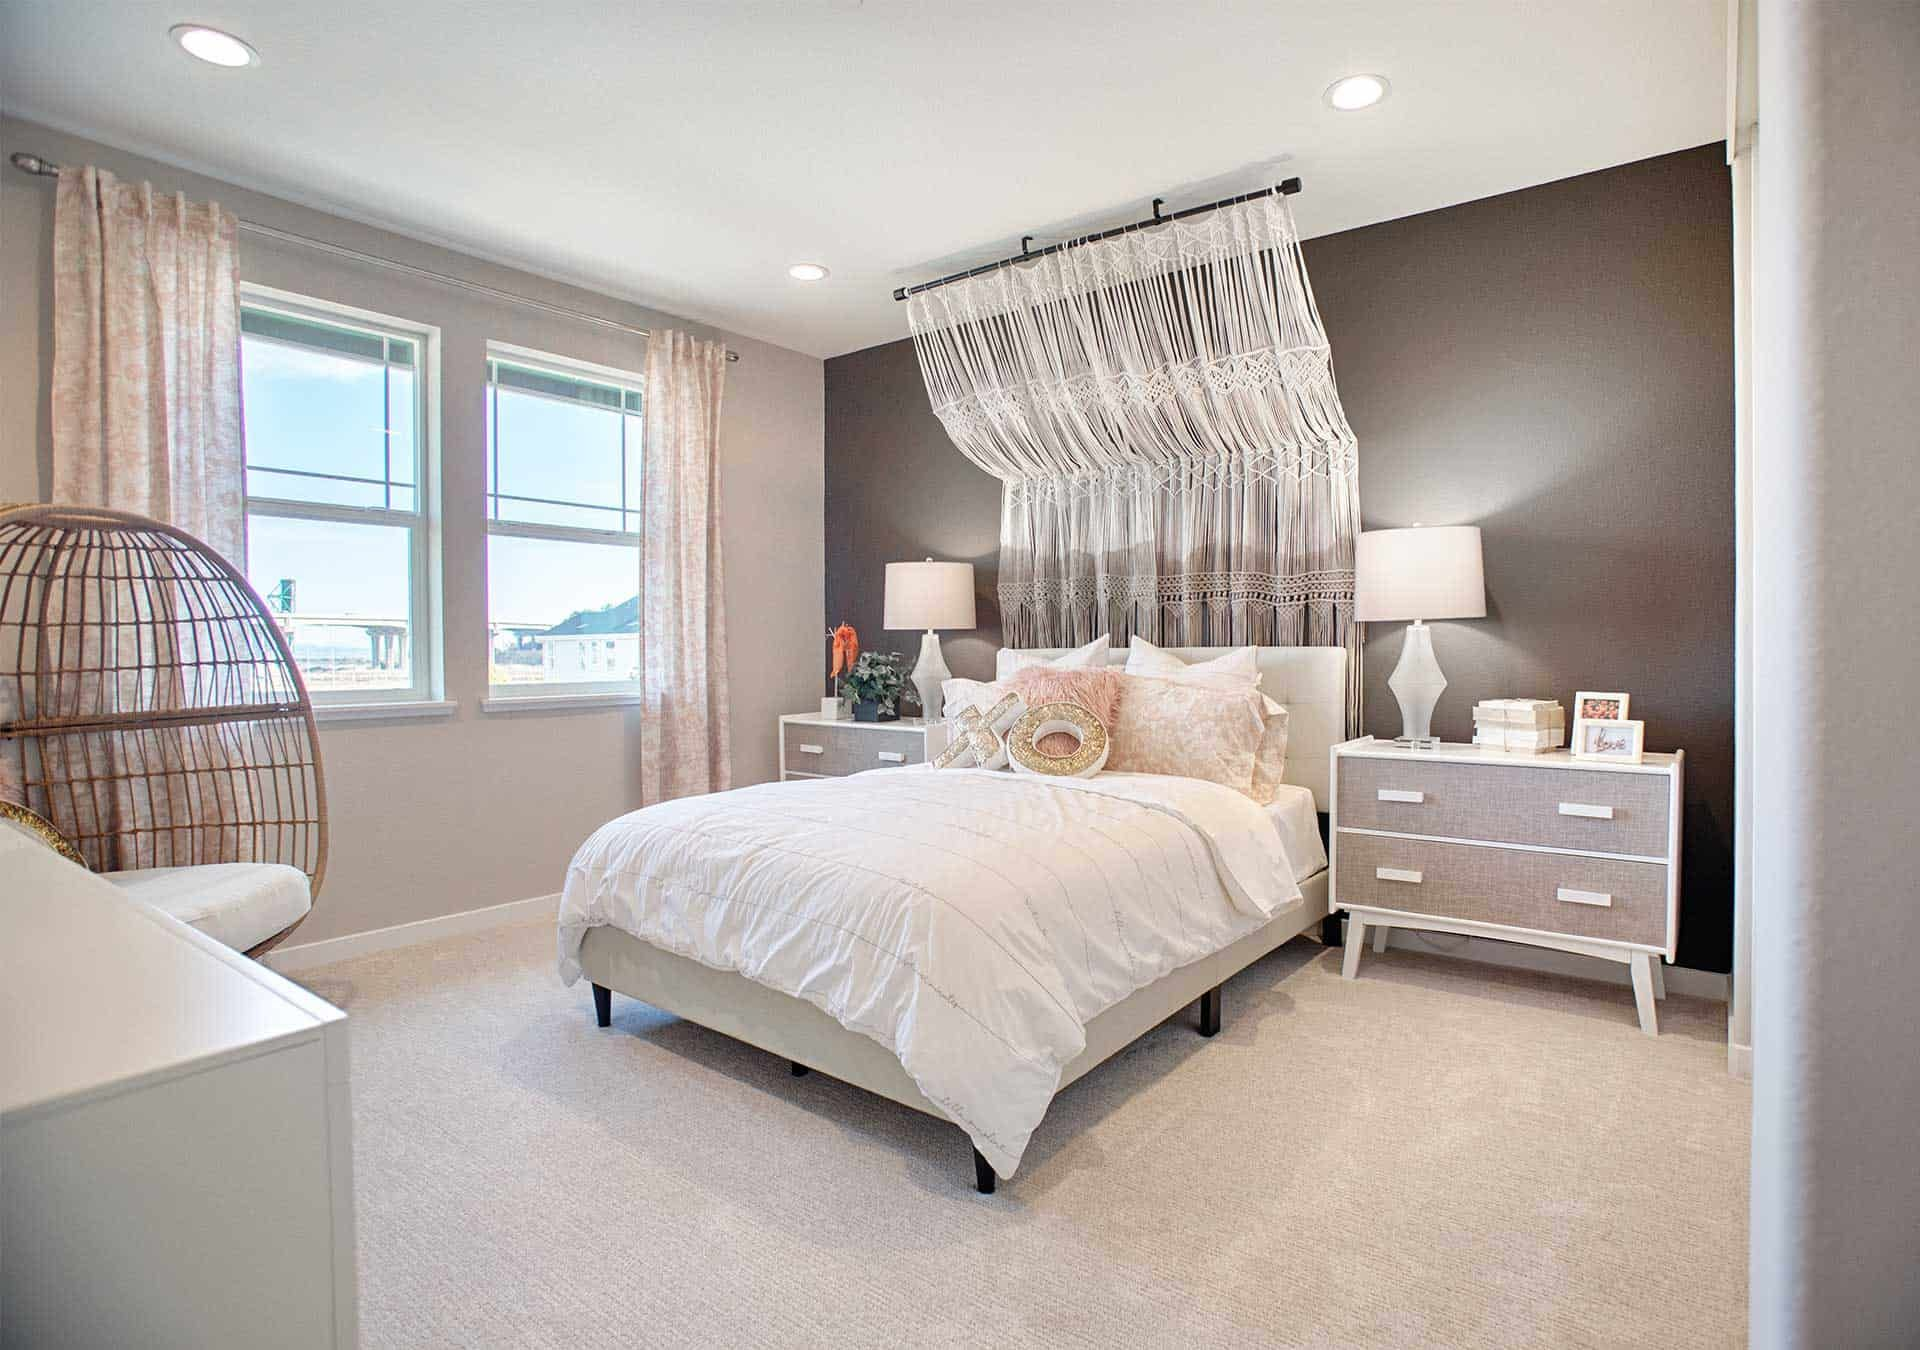 Bedroom featured in the Plan 7 By Tri Pointe Homes in Santa Rosa, CA